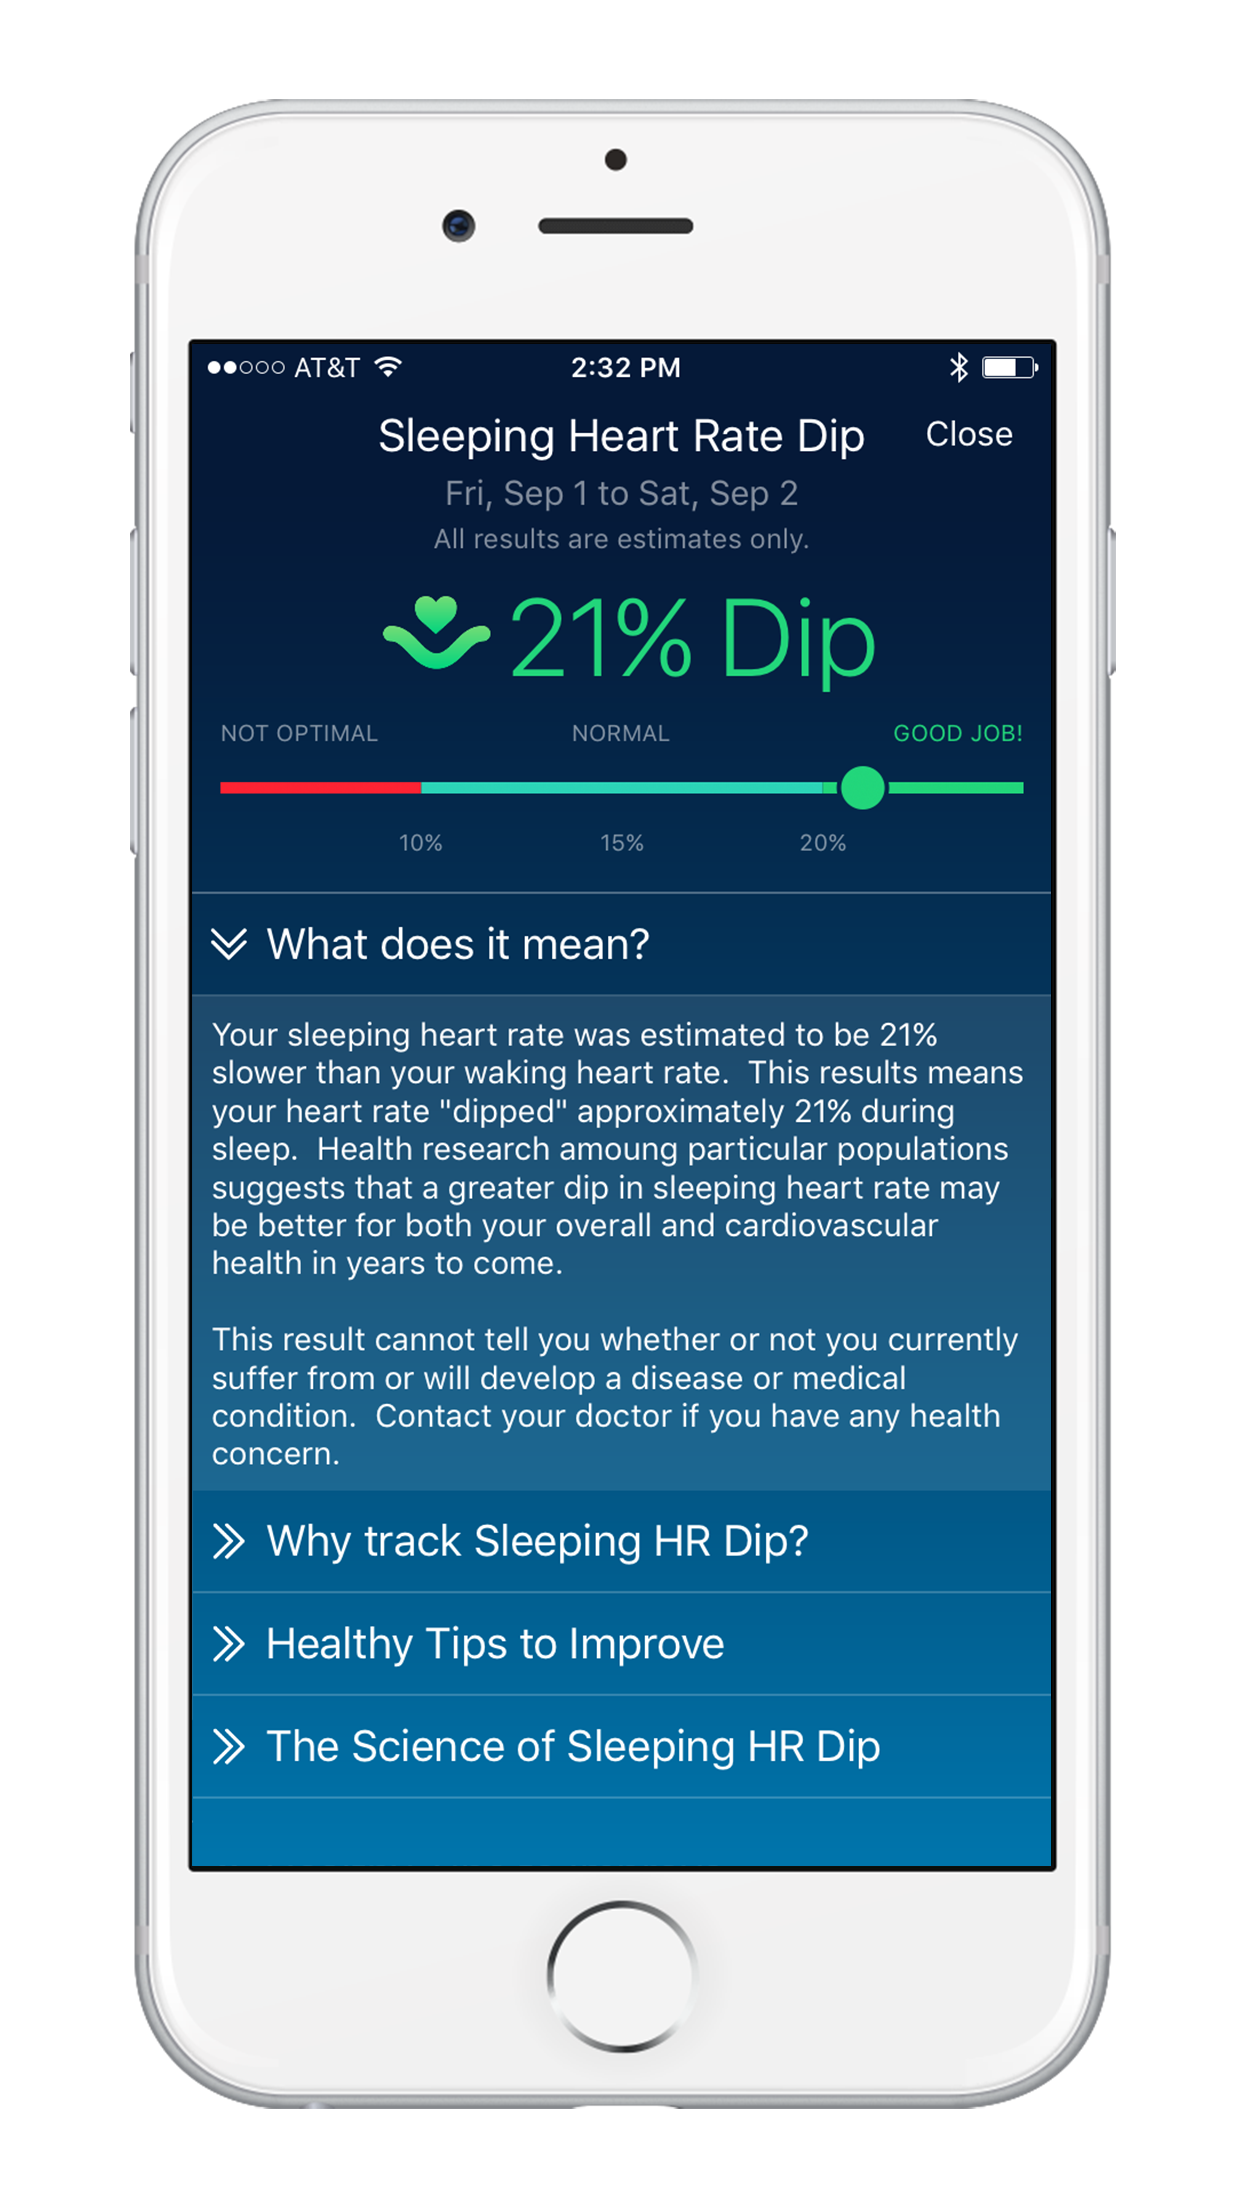 Sleep Watch Version 3 by Bodymatter on iPhone Sleeping Heart Rate Dip Detail View